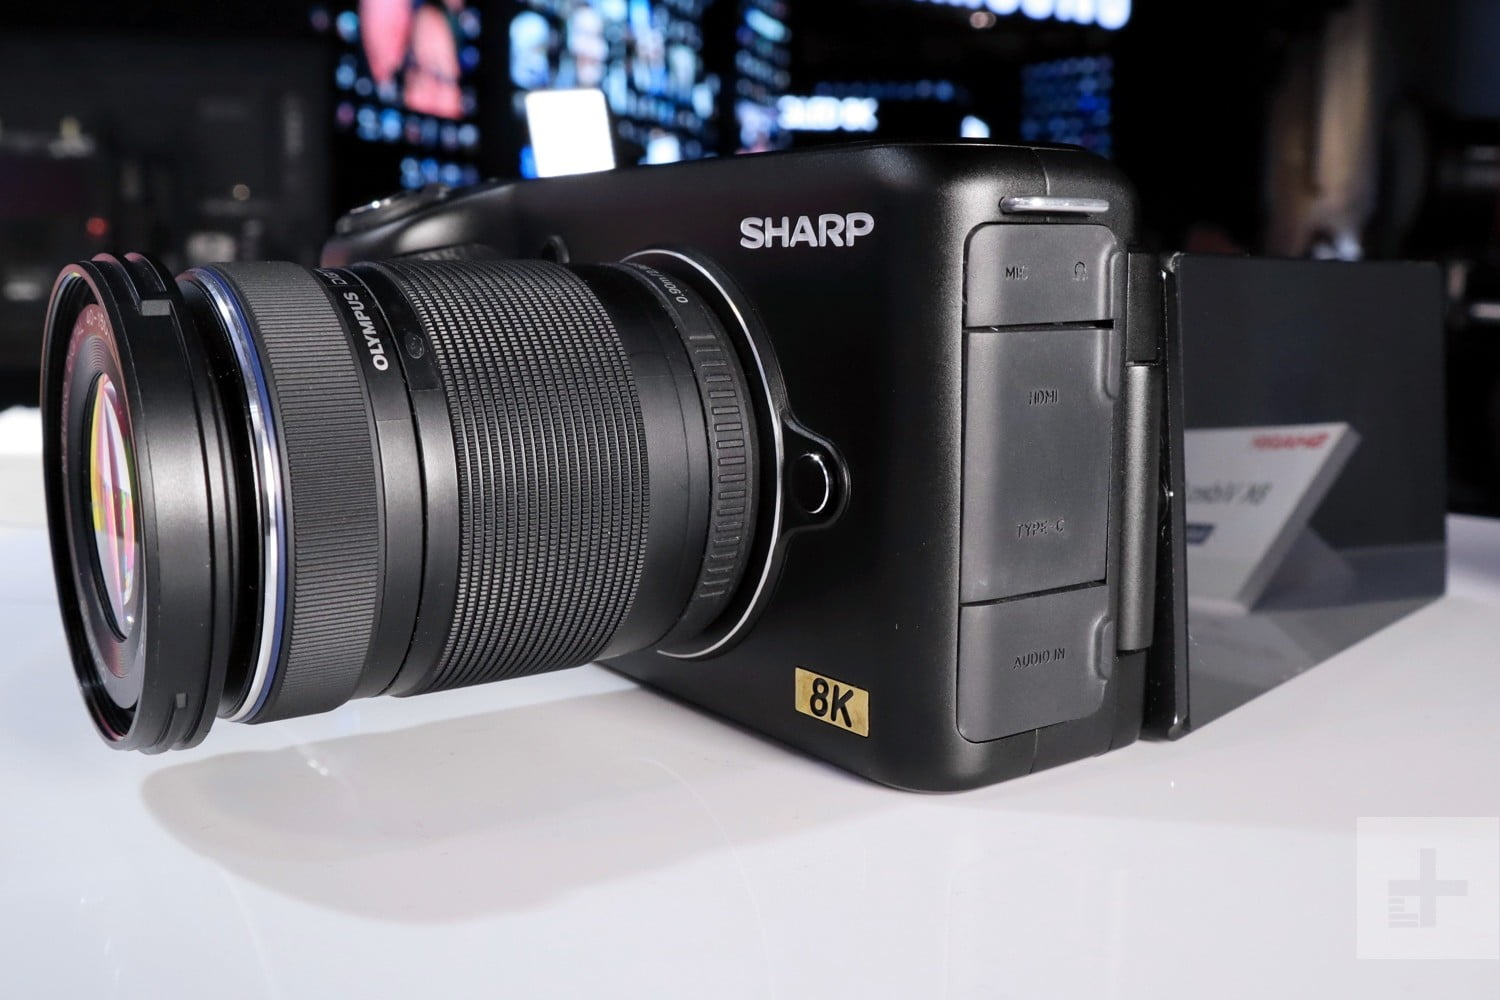 Sharp's 8K Camera Prototype May Actually Be Affordable